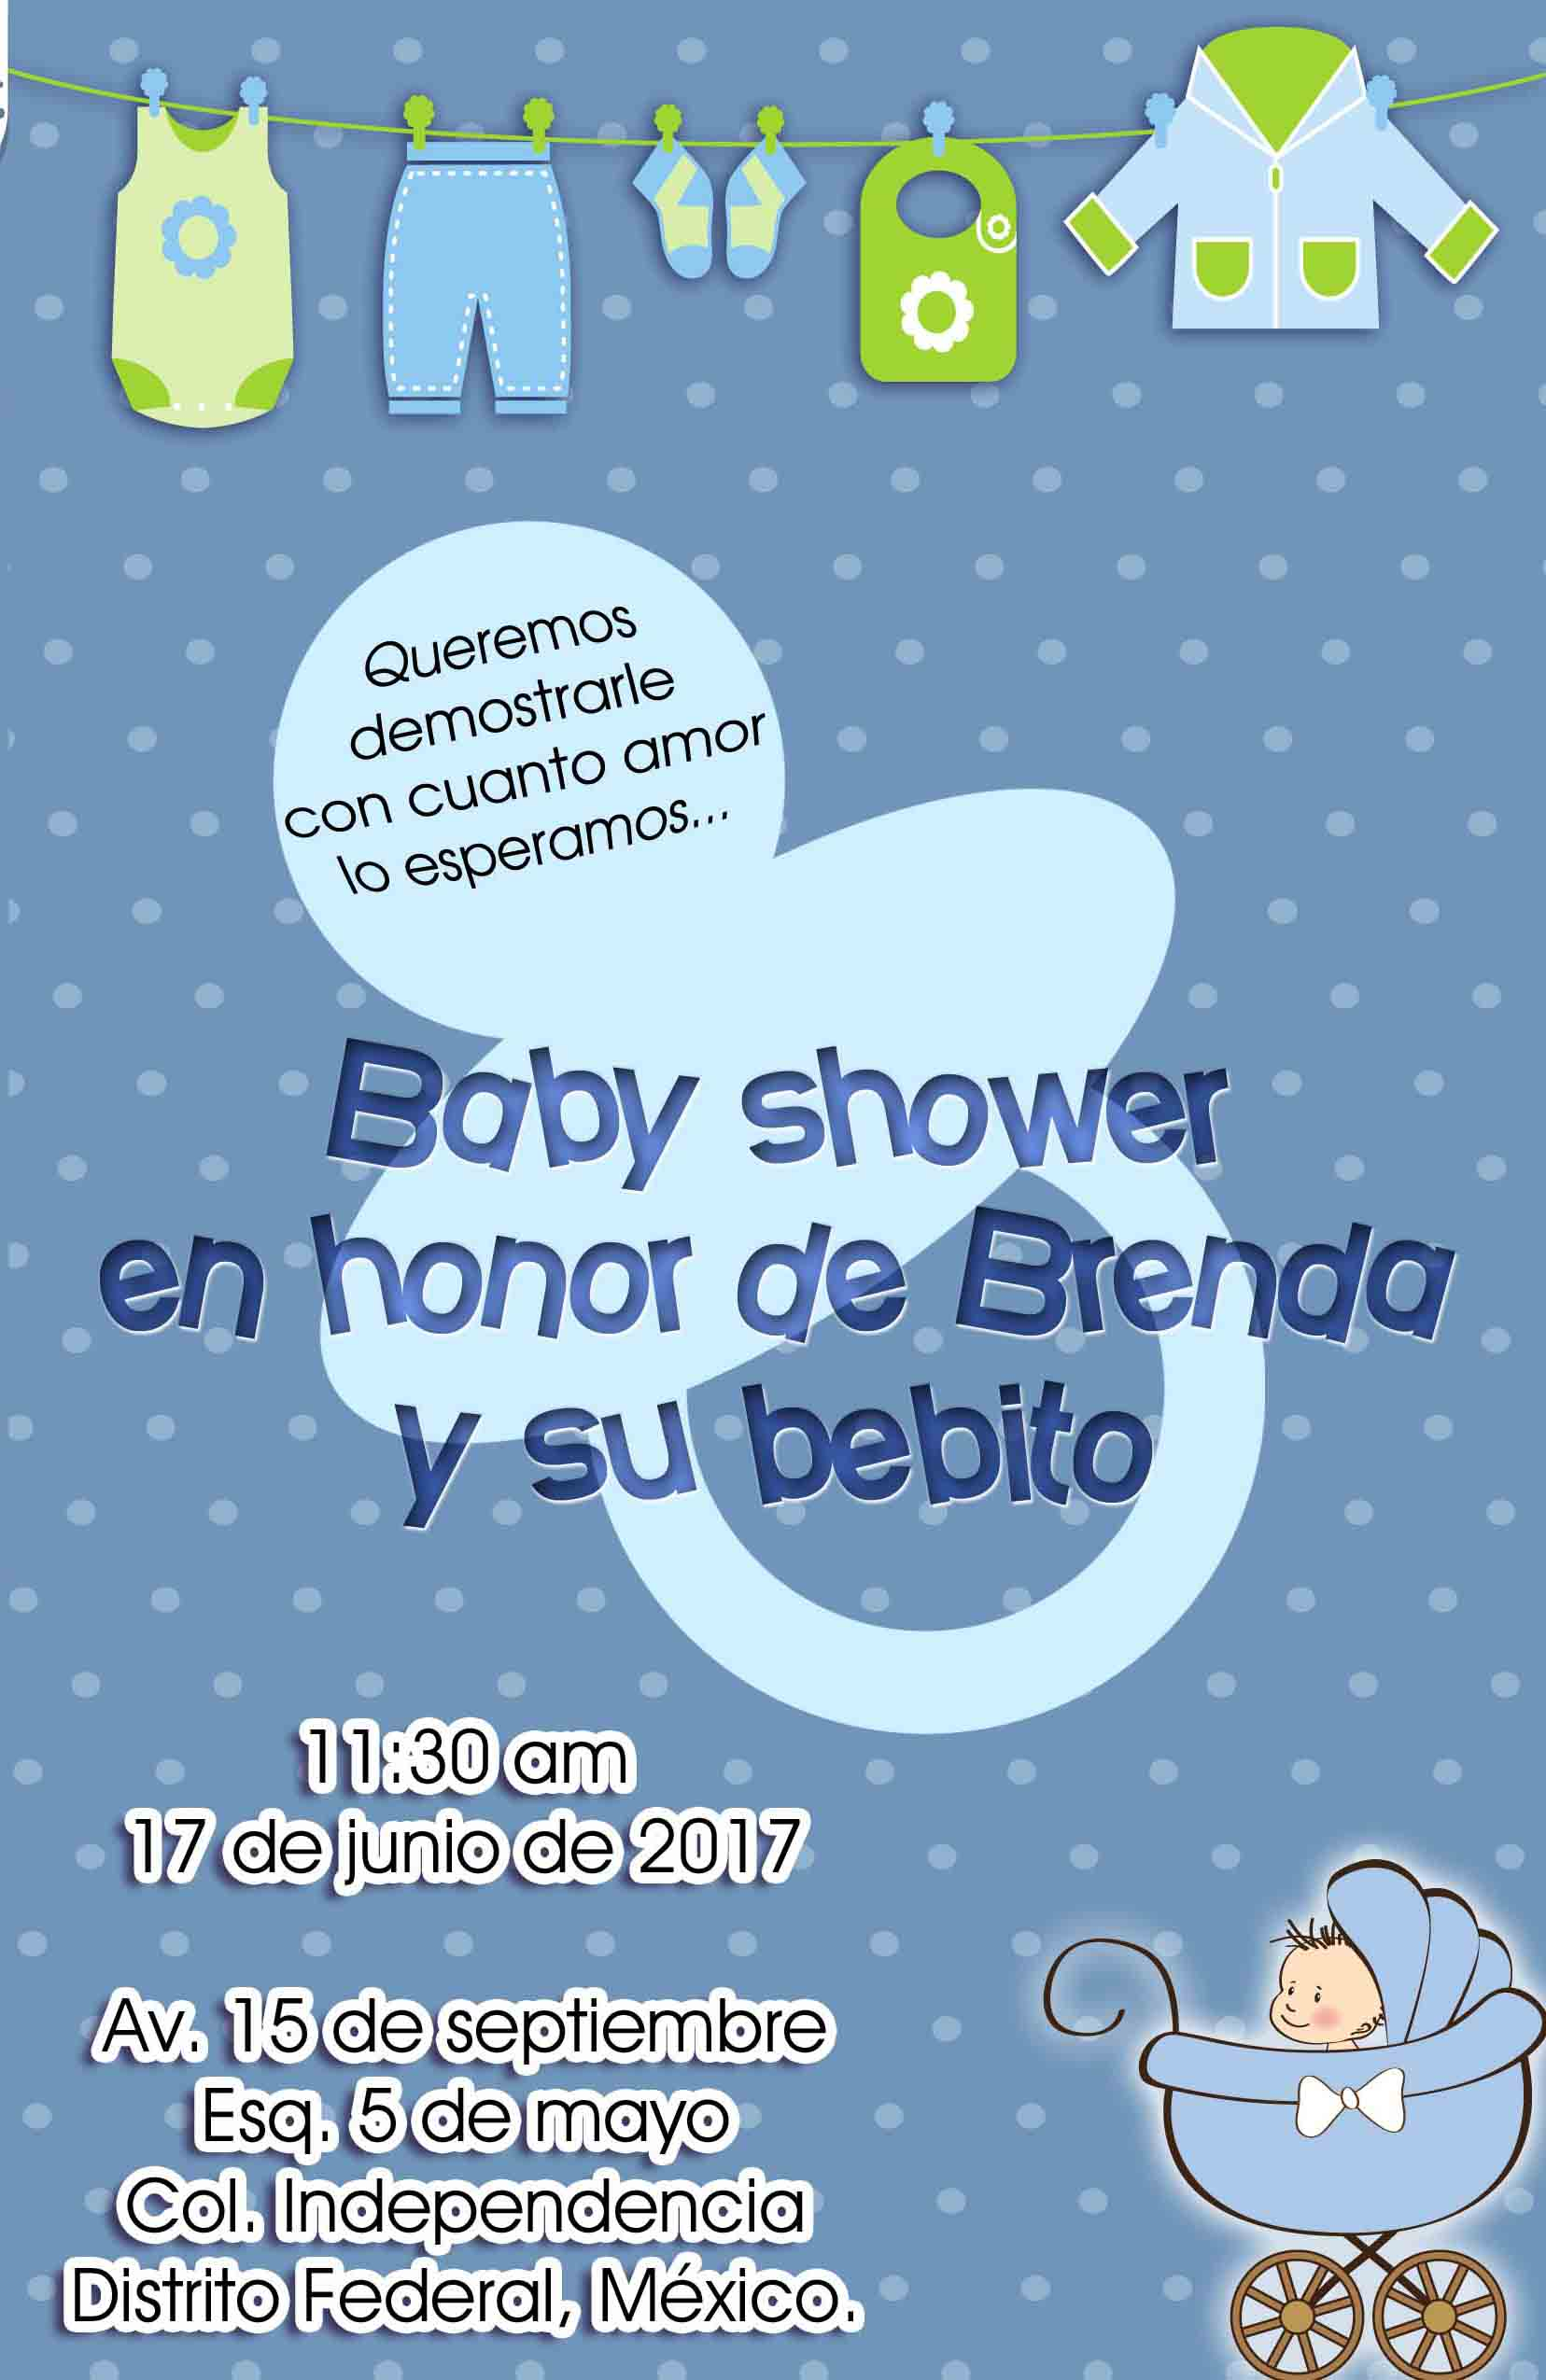 Great Frases Para Baby Shower Gallery Baby Shower Ideas Frases Lindas Para  Tatuajes Quotes Links Para With Ideas Para Baby Shower De Nia.